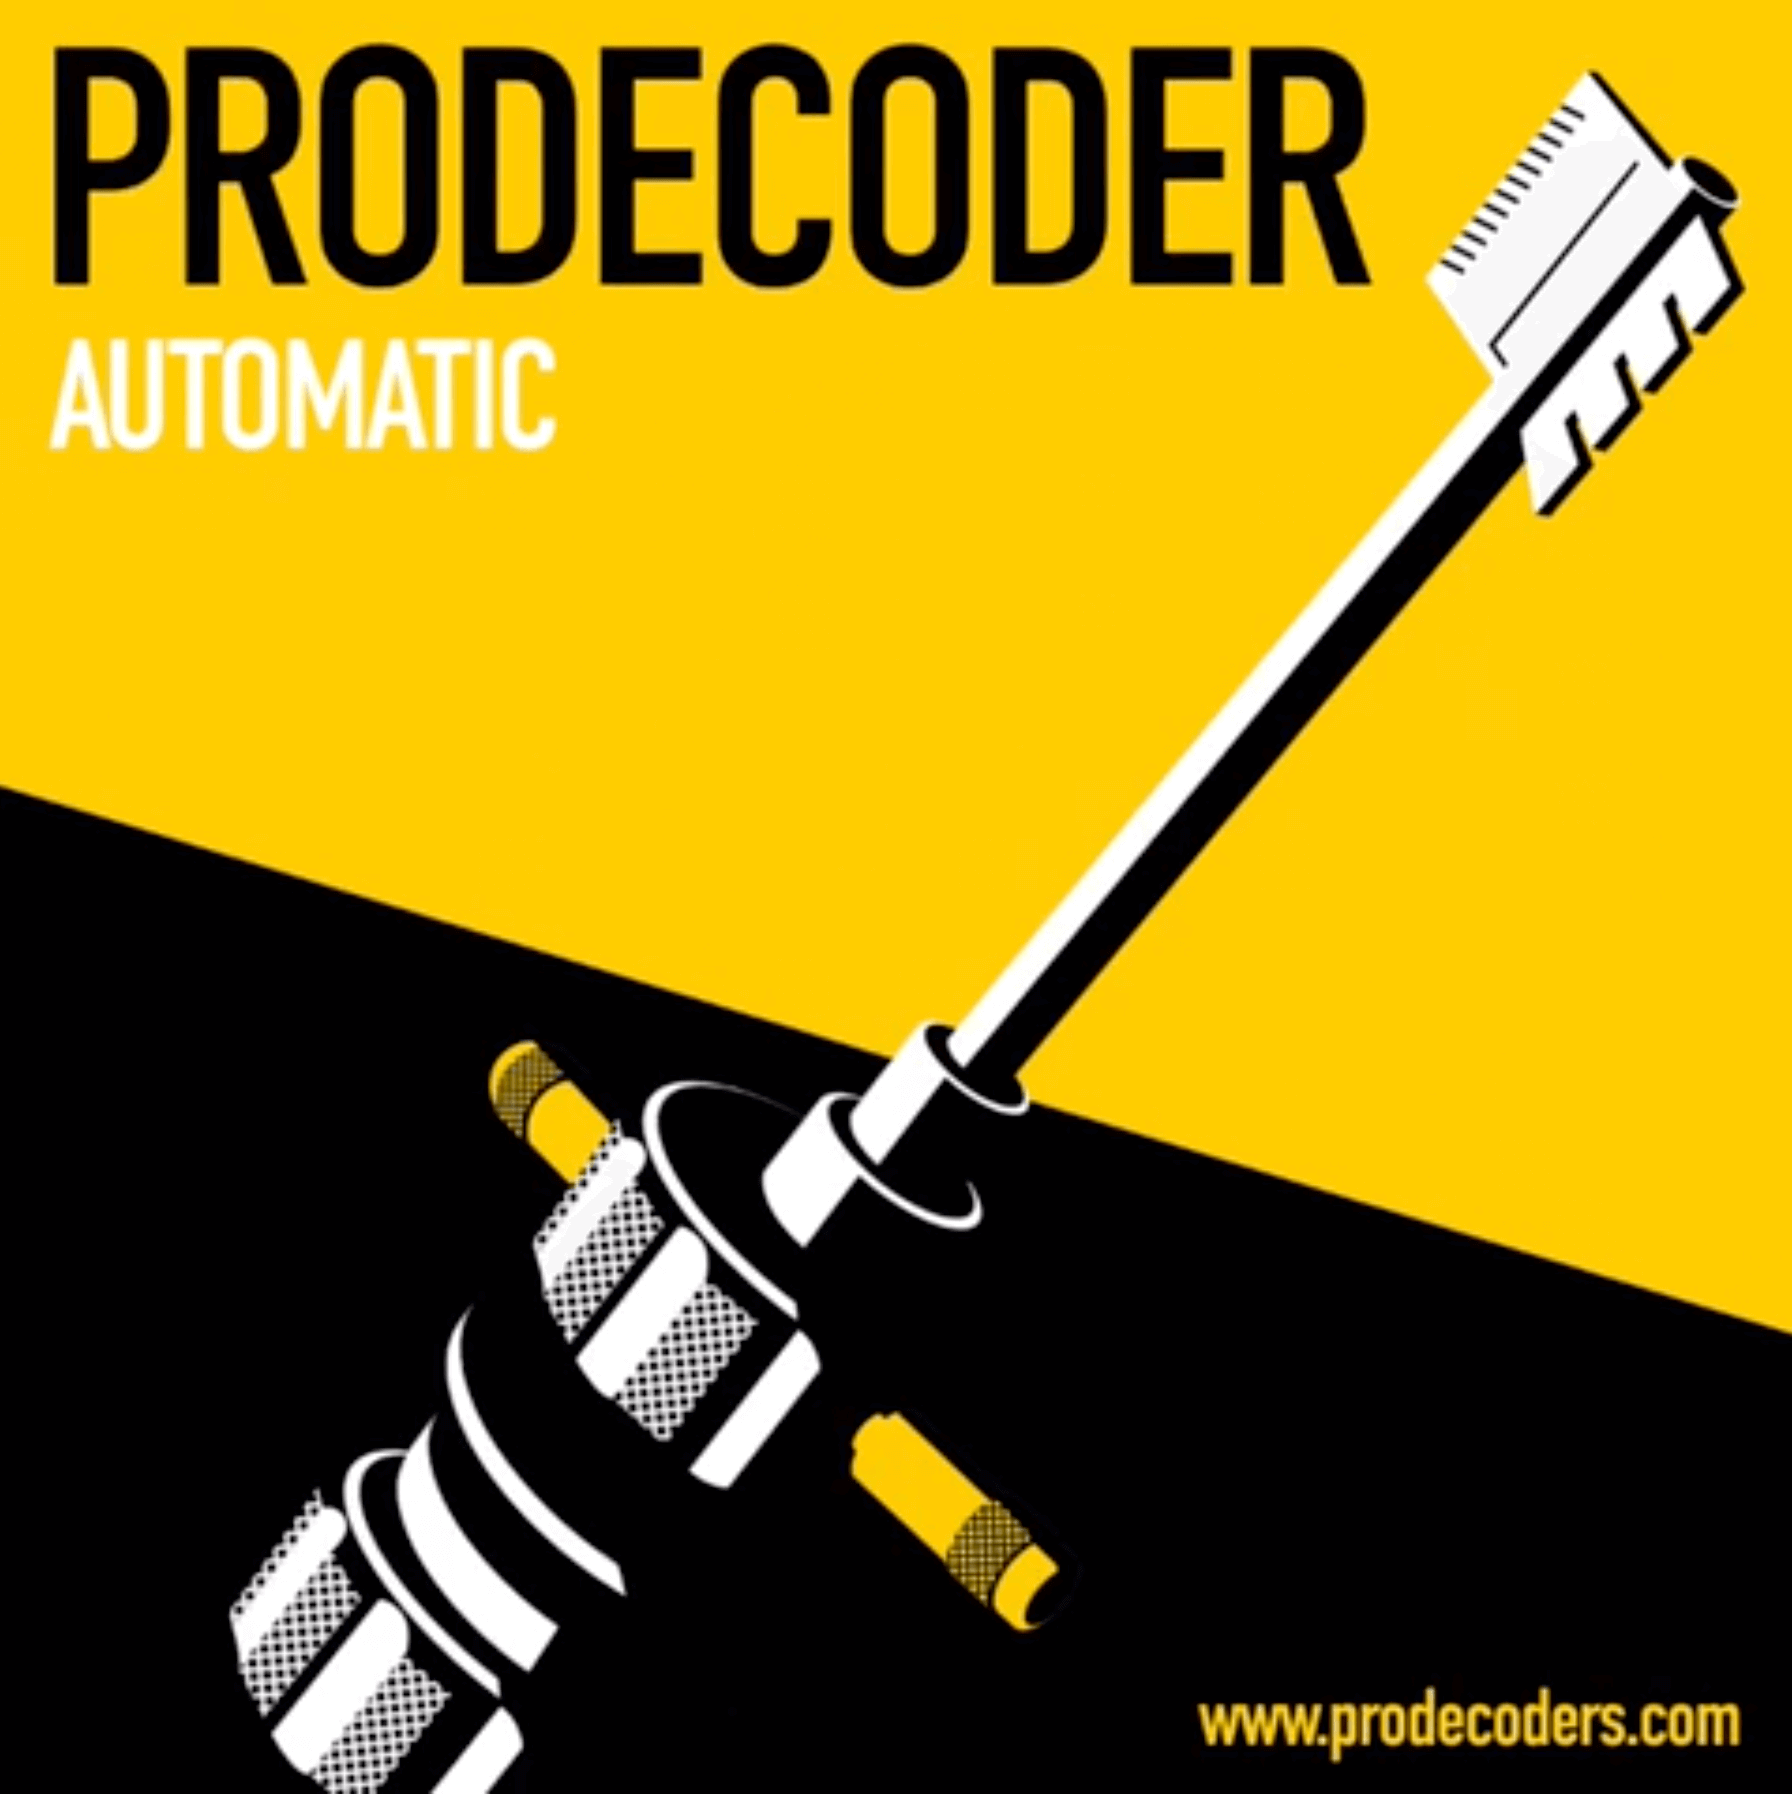 prodecoder automatic